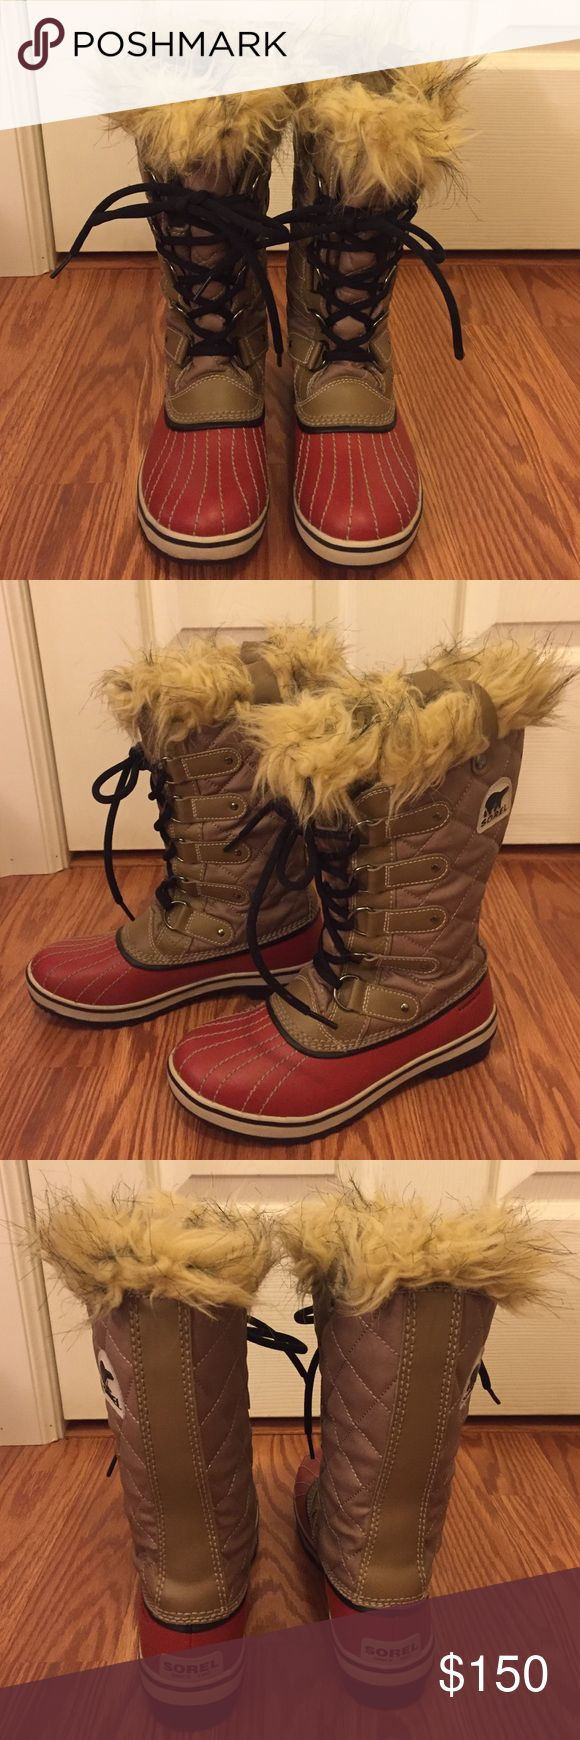 Sorel Joan of Arc Beige/Red Snow Boots 6 Gently worn one time. Practically brand new. Beige & Red Sorel snow boots. Size 6 Sorel Shoes Winter & Rain Boots